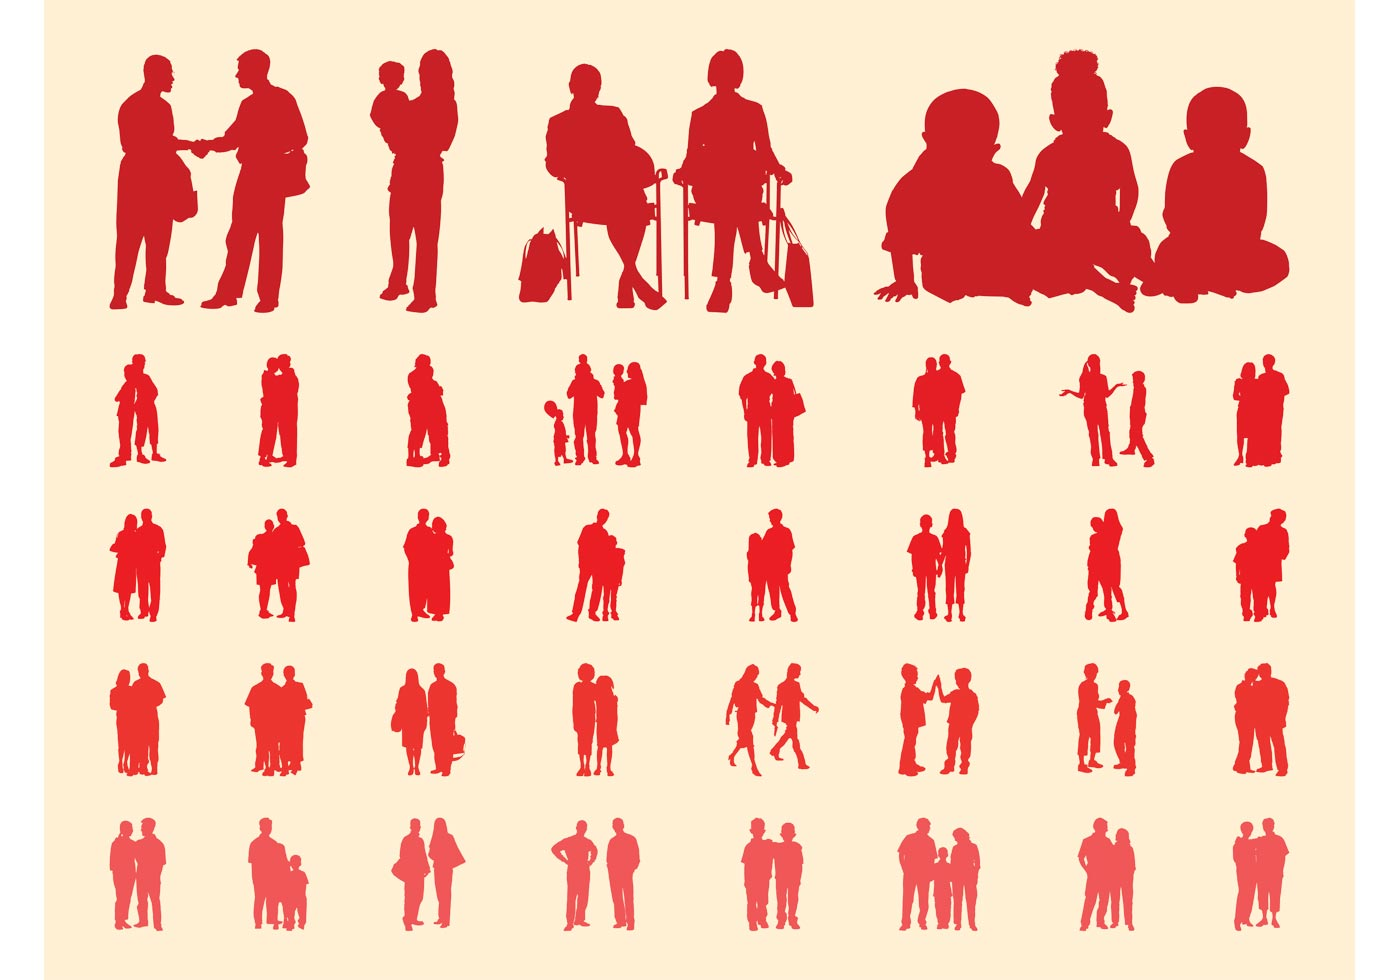 Traveling People Silhouettes Vector Art Graphics: People In Groups Silhouettes Set